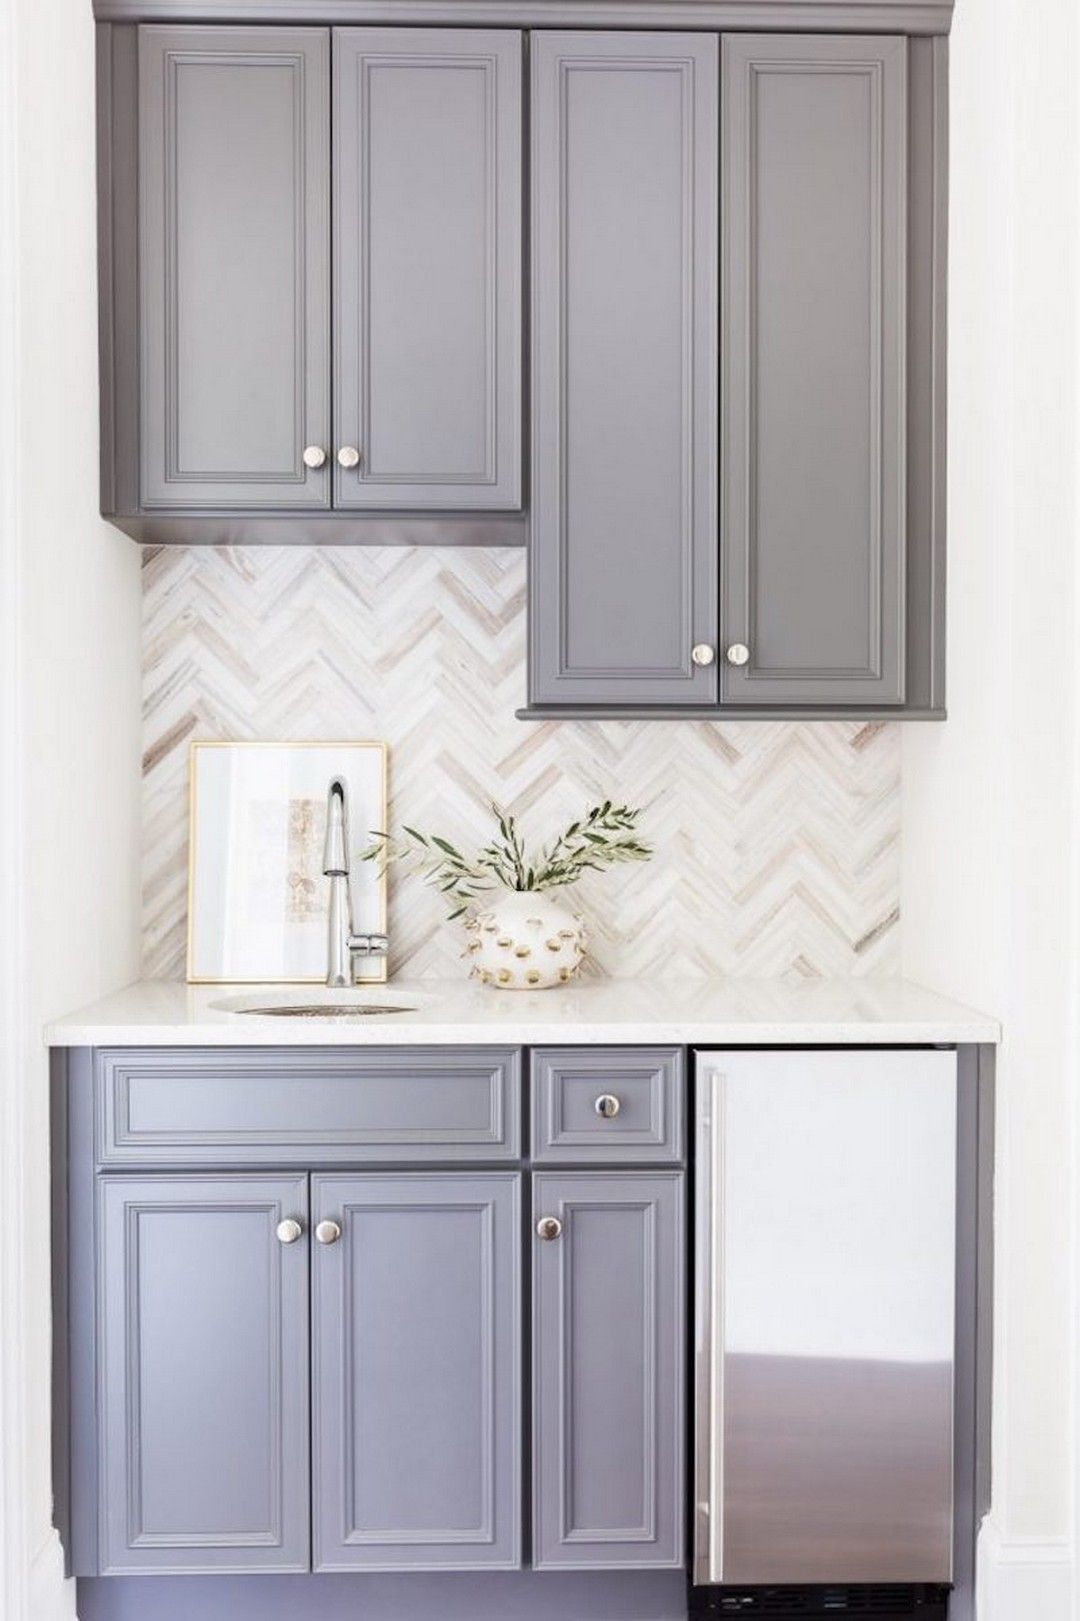 Cool 99 Modern White And Grey Kitchen Cabinets Design Ideas Http Www 99arch Classic White Kitchen Backsplash For White Cabinets Backsplash With Dark Cabinets